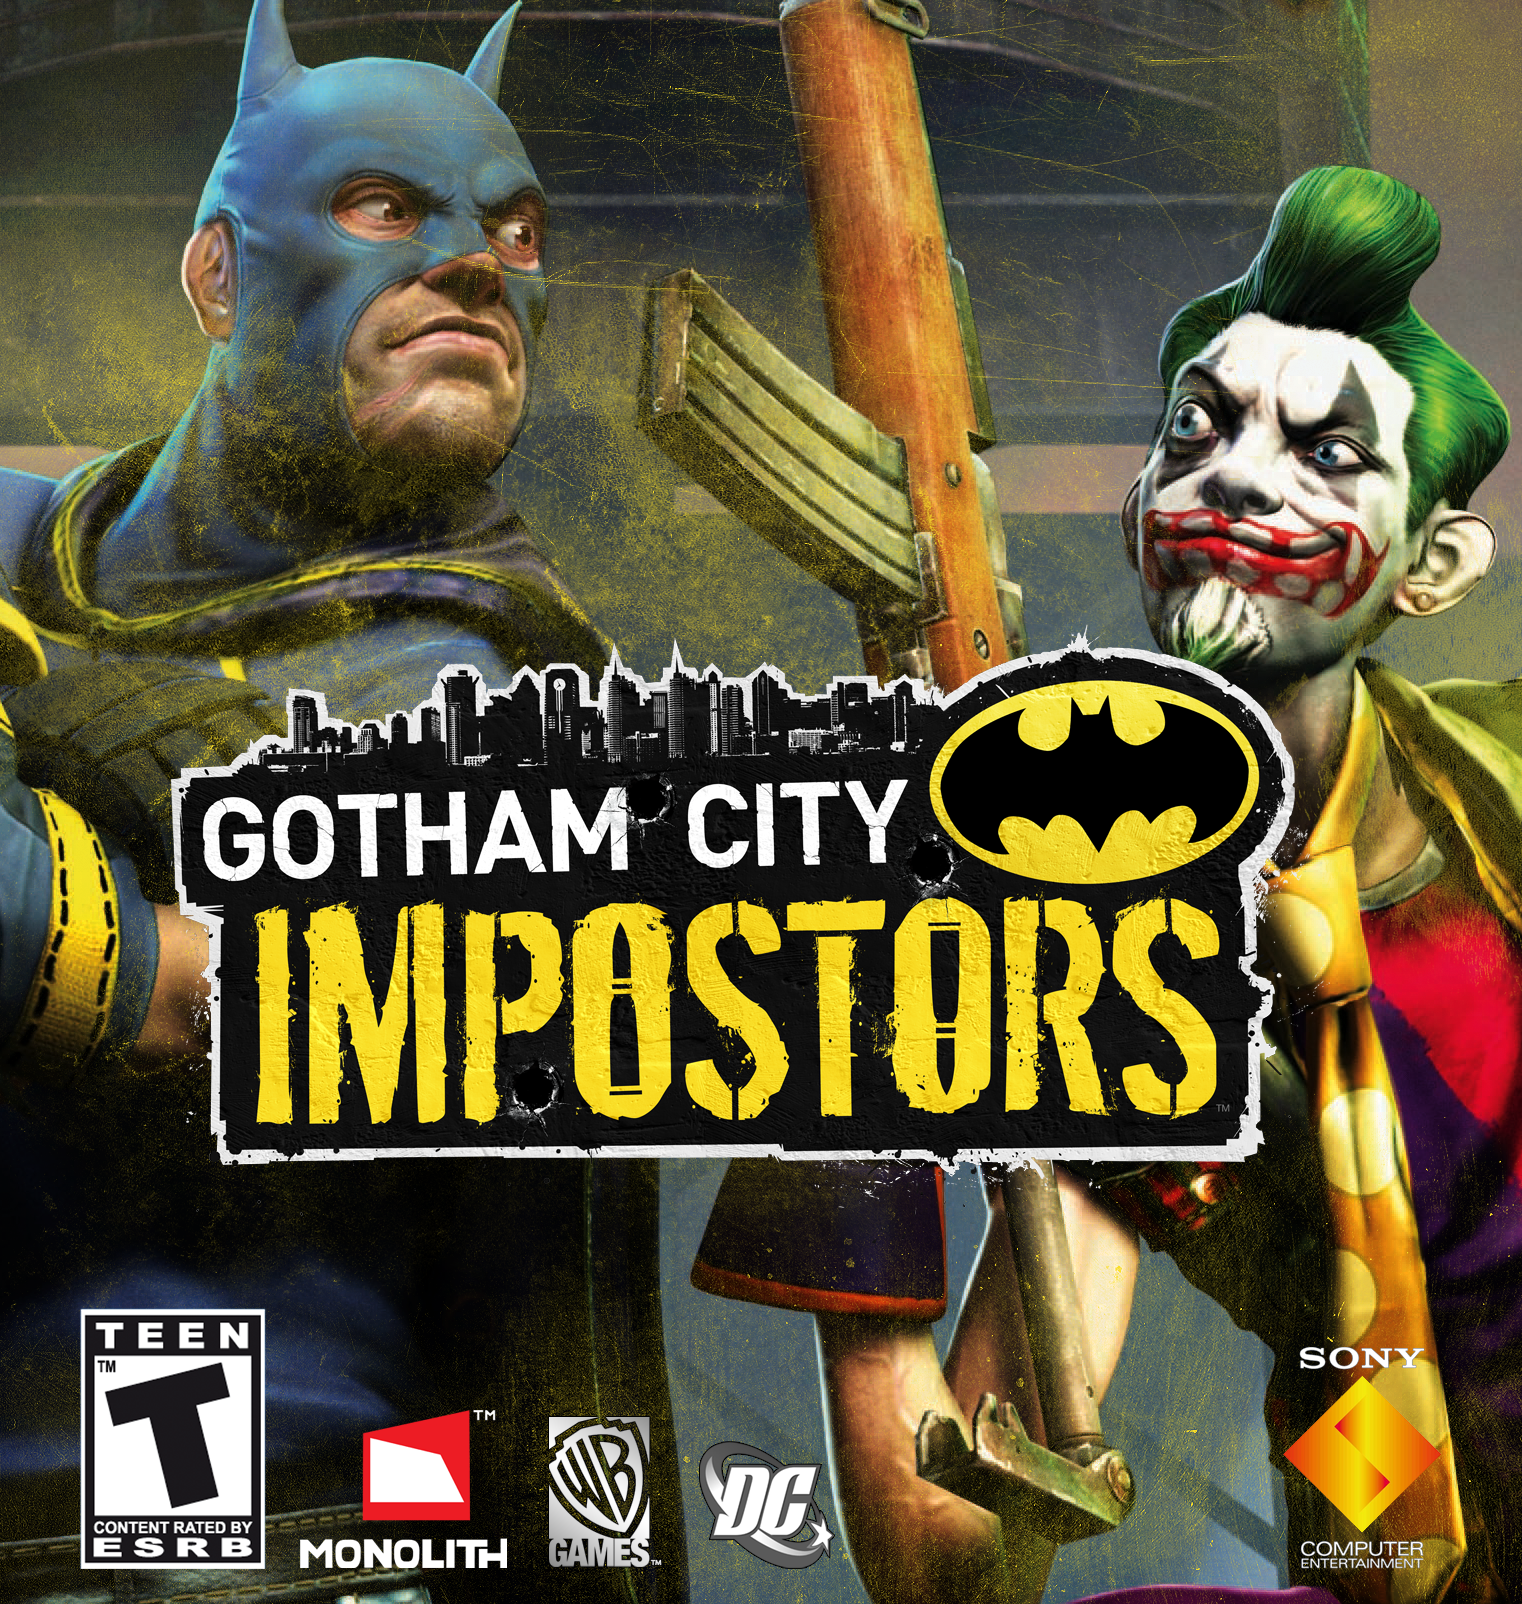 Gotham City Impostors (Video Game)